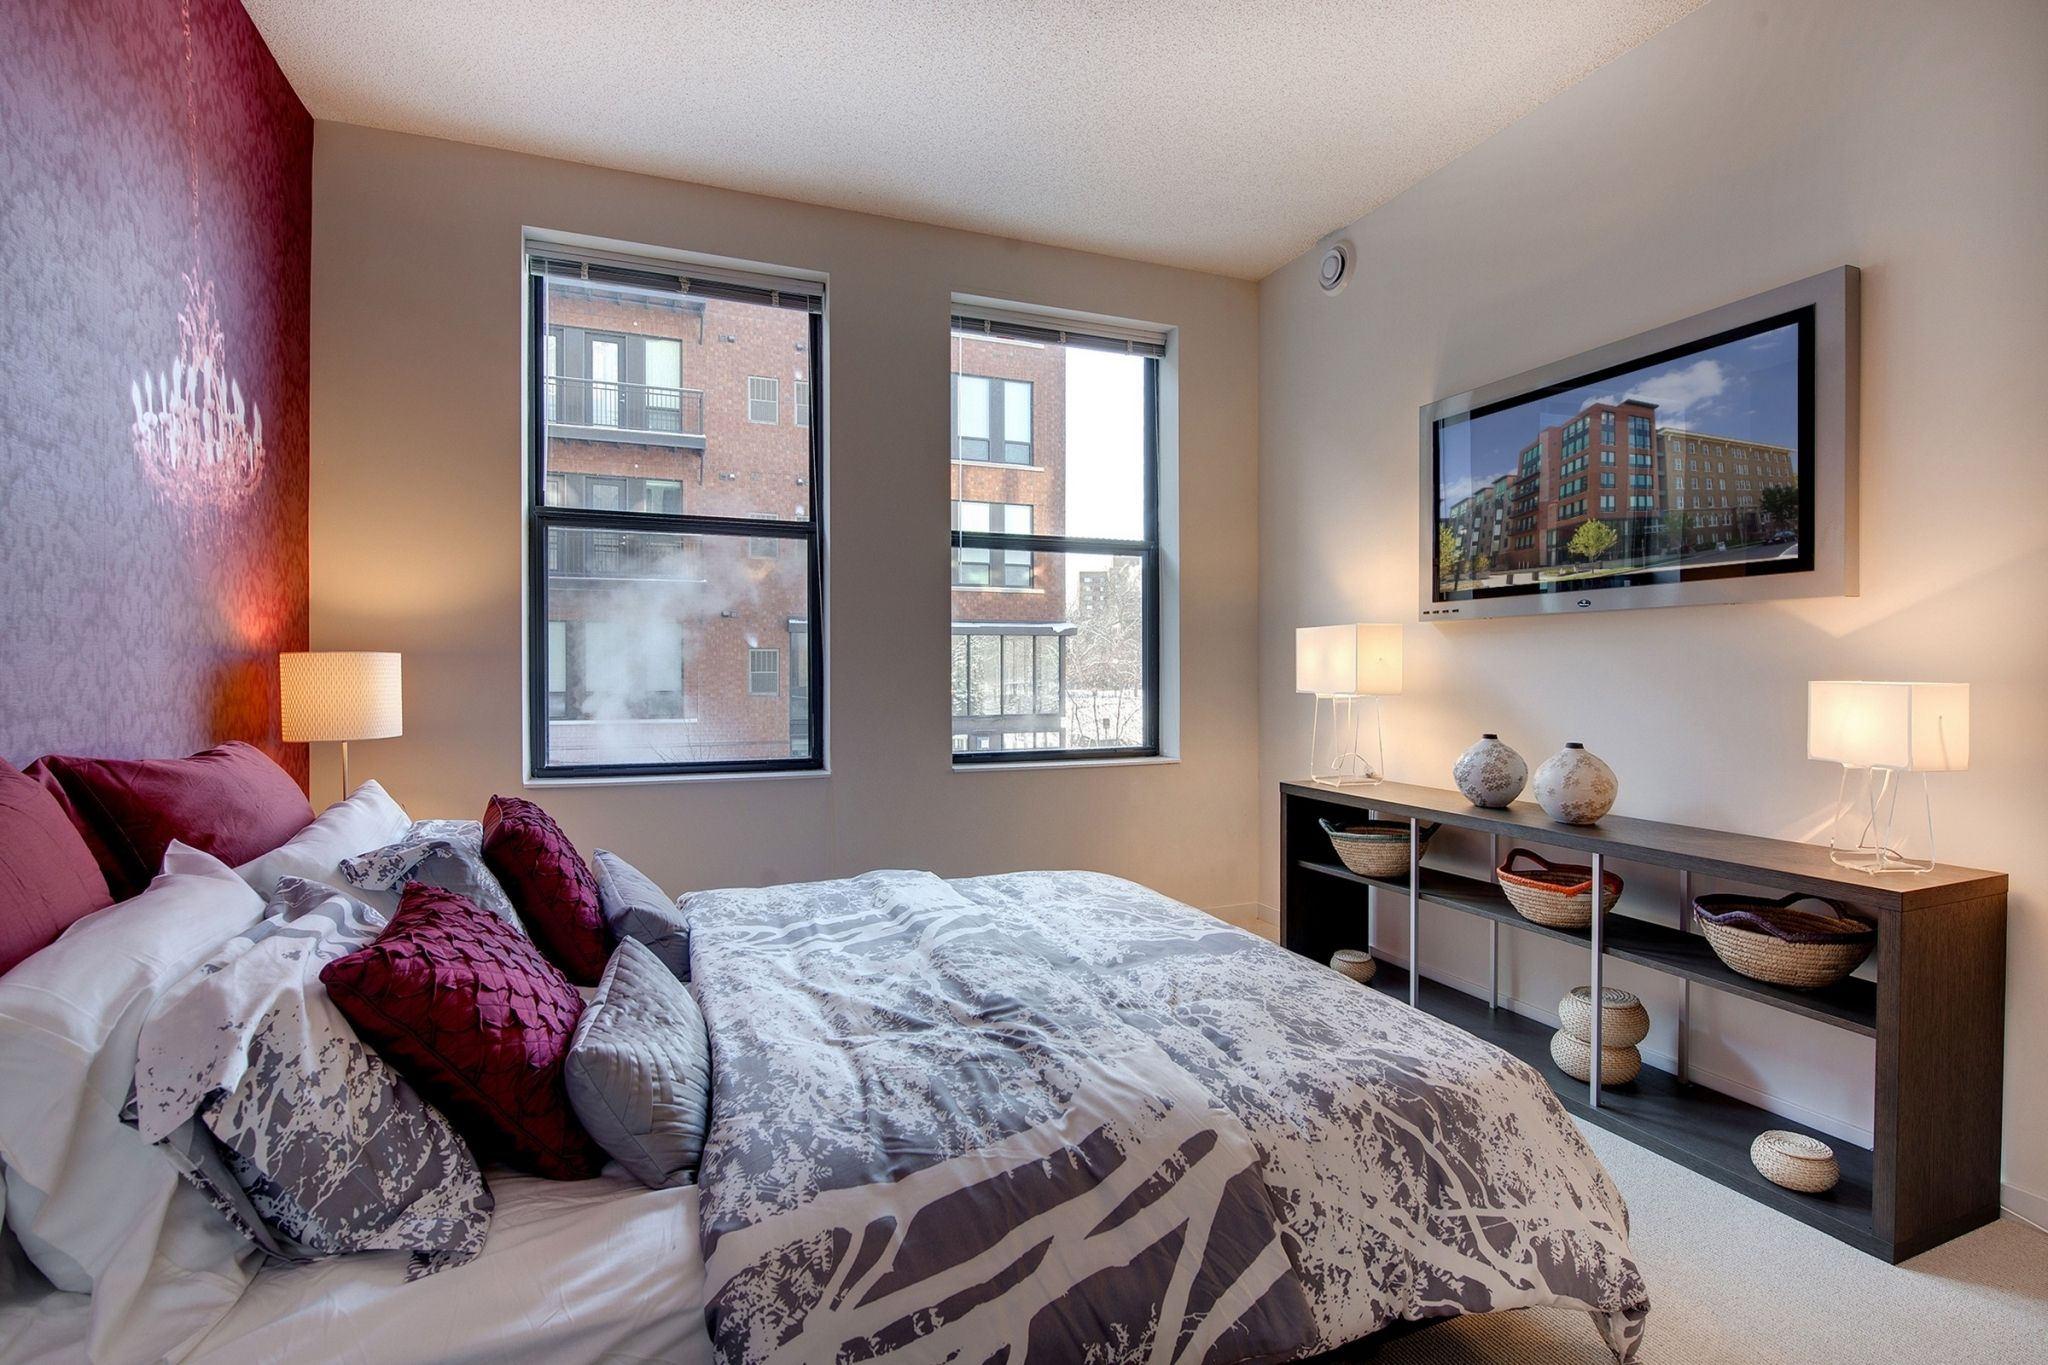 Downtown Minneapolis Apartments For Rent With Large Bedrooms Eitel Building City Apartments